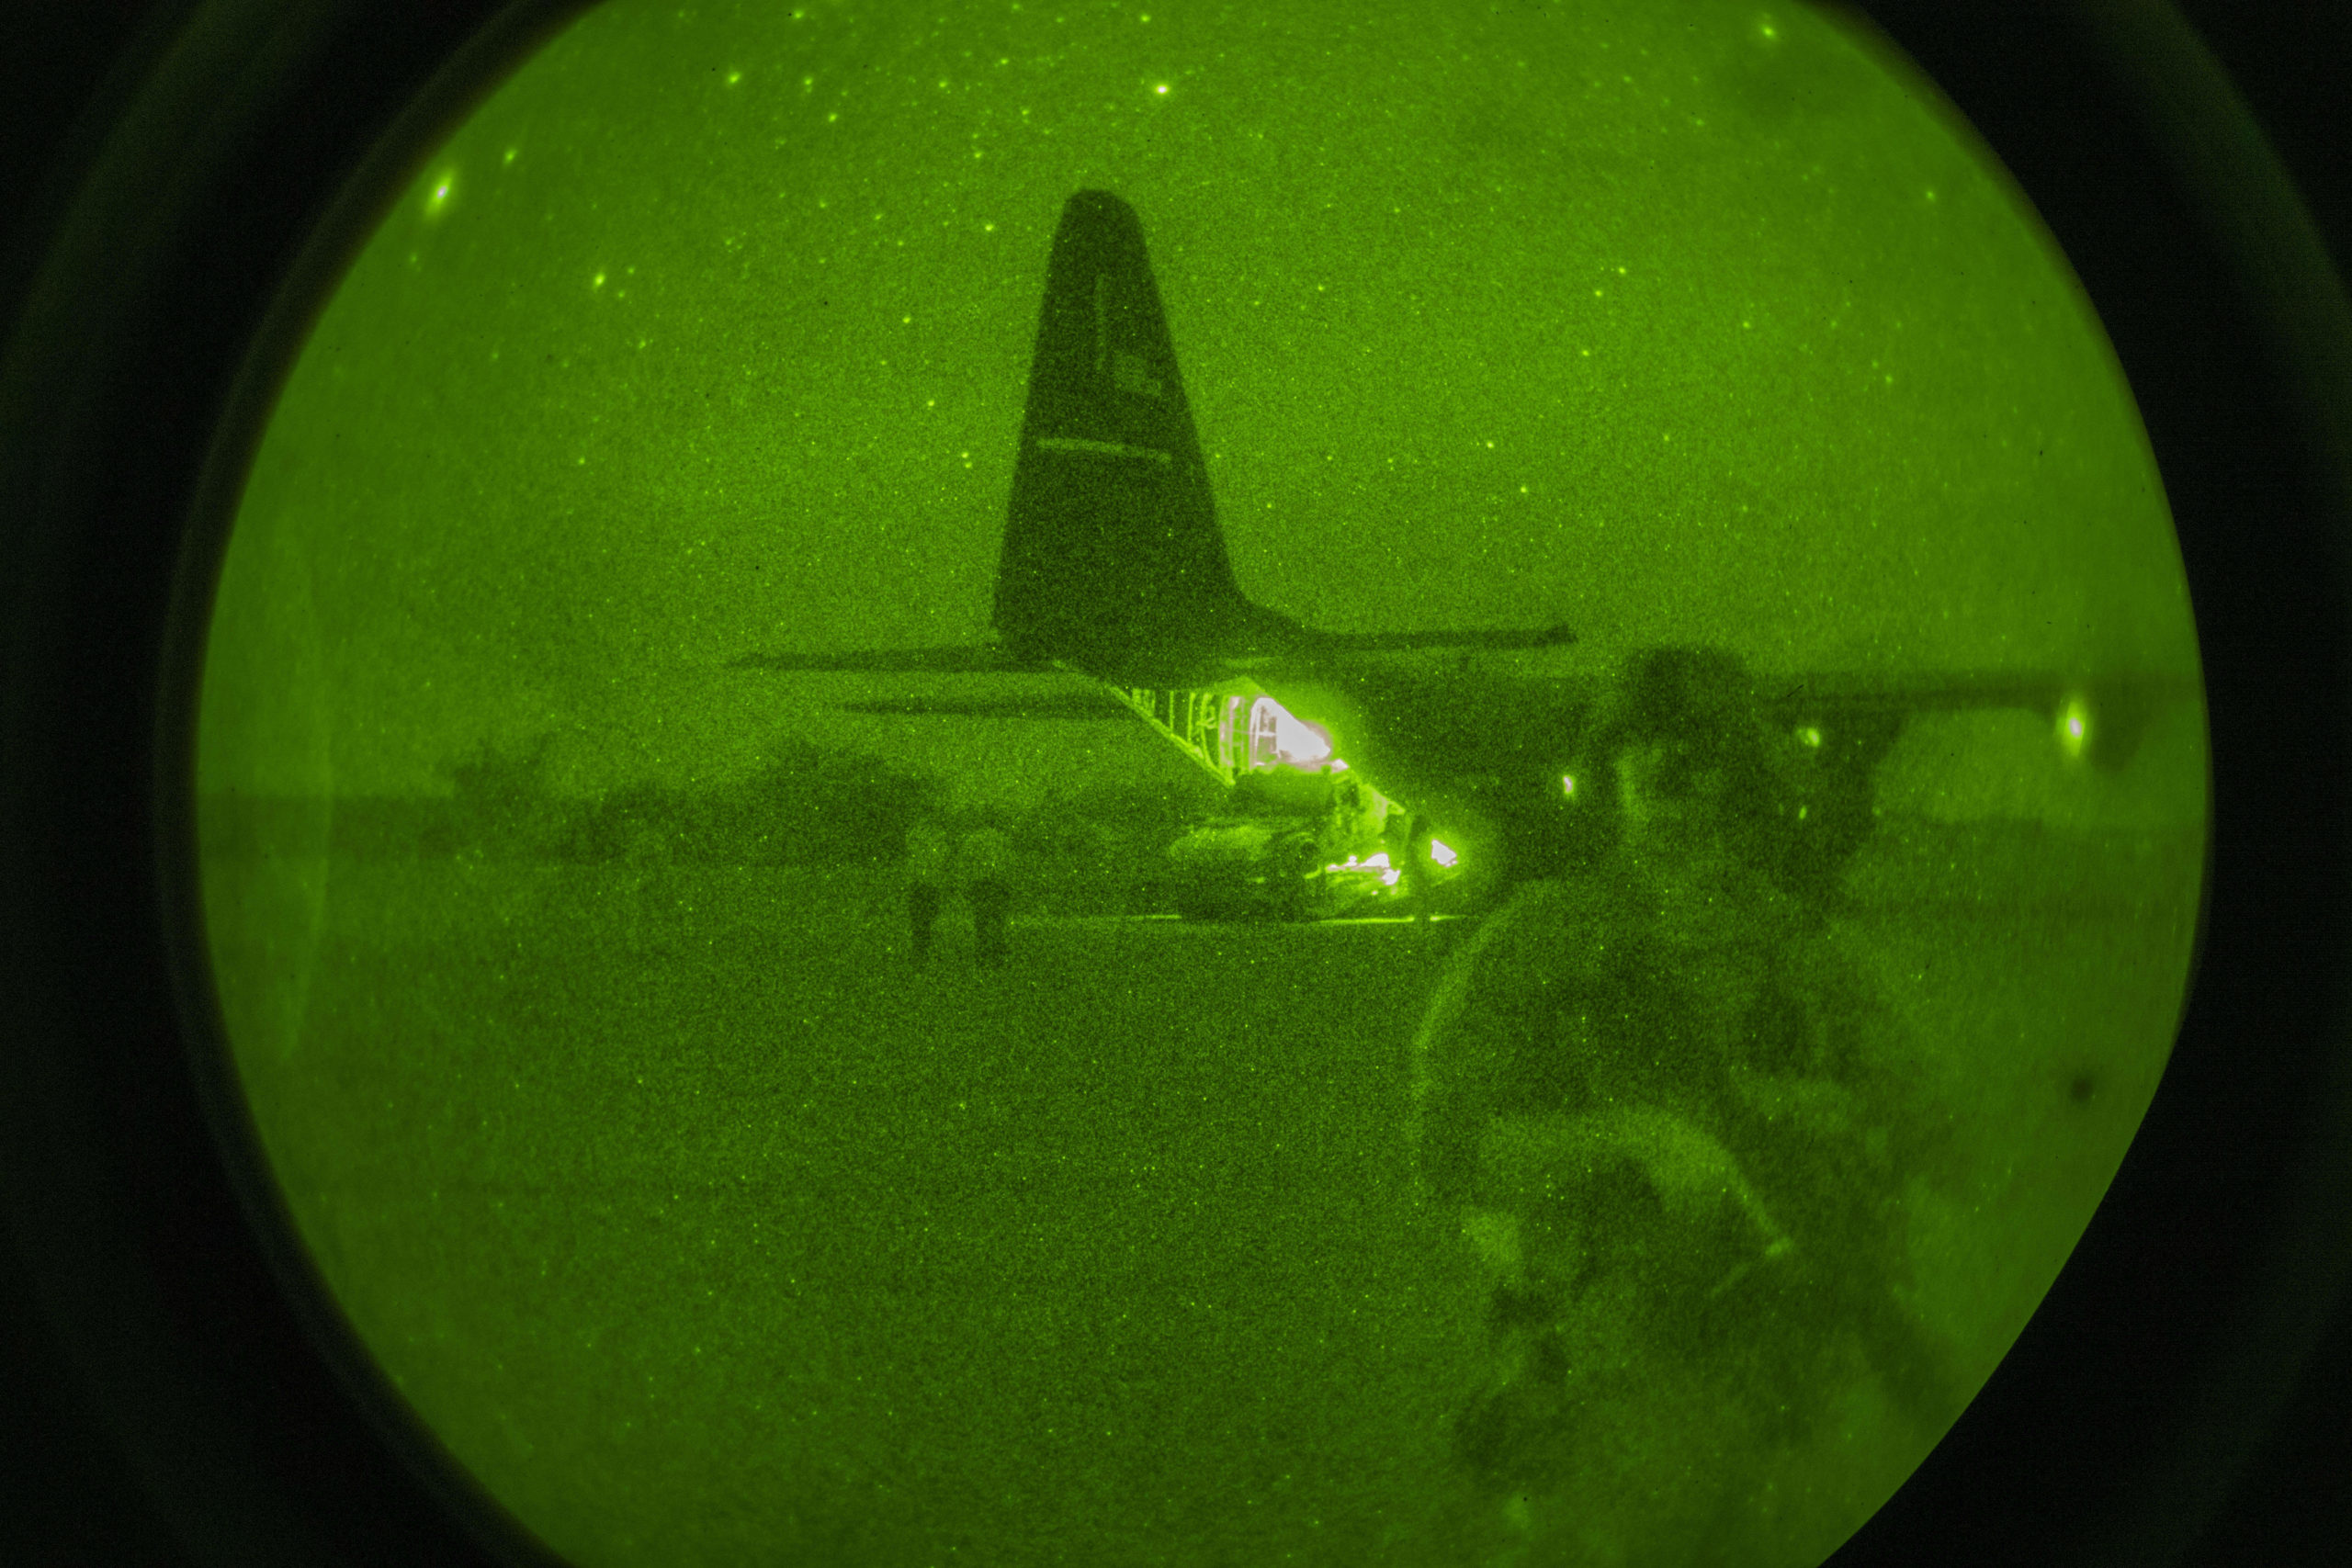 How Airmen and Aircraft Helped Move U.S. Forces Out of Somalia - Air Force Magazine